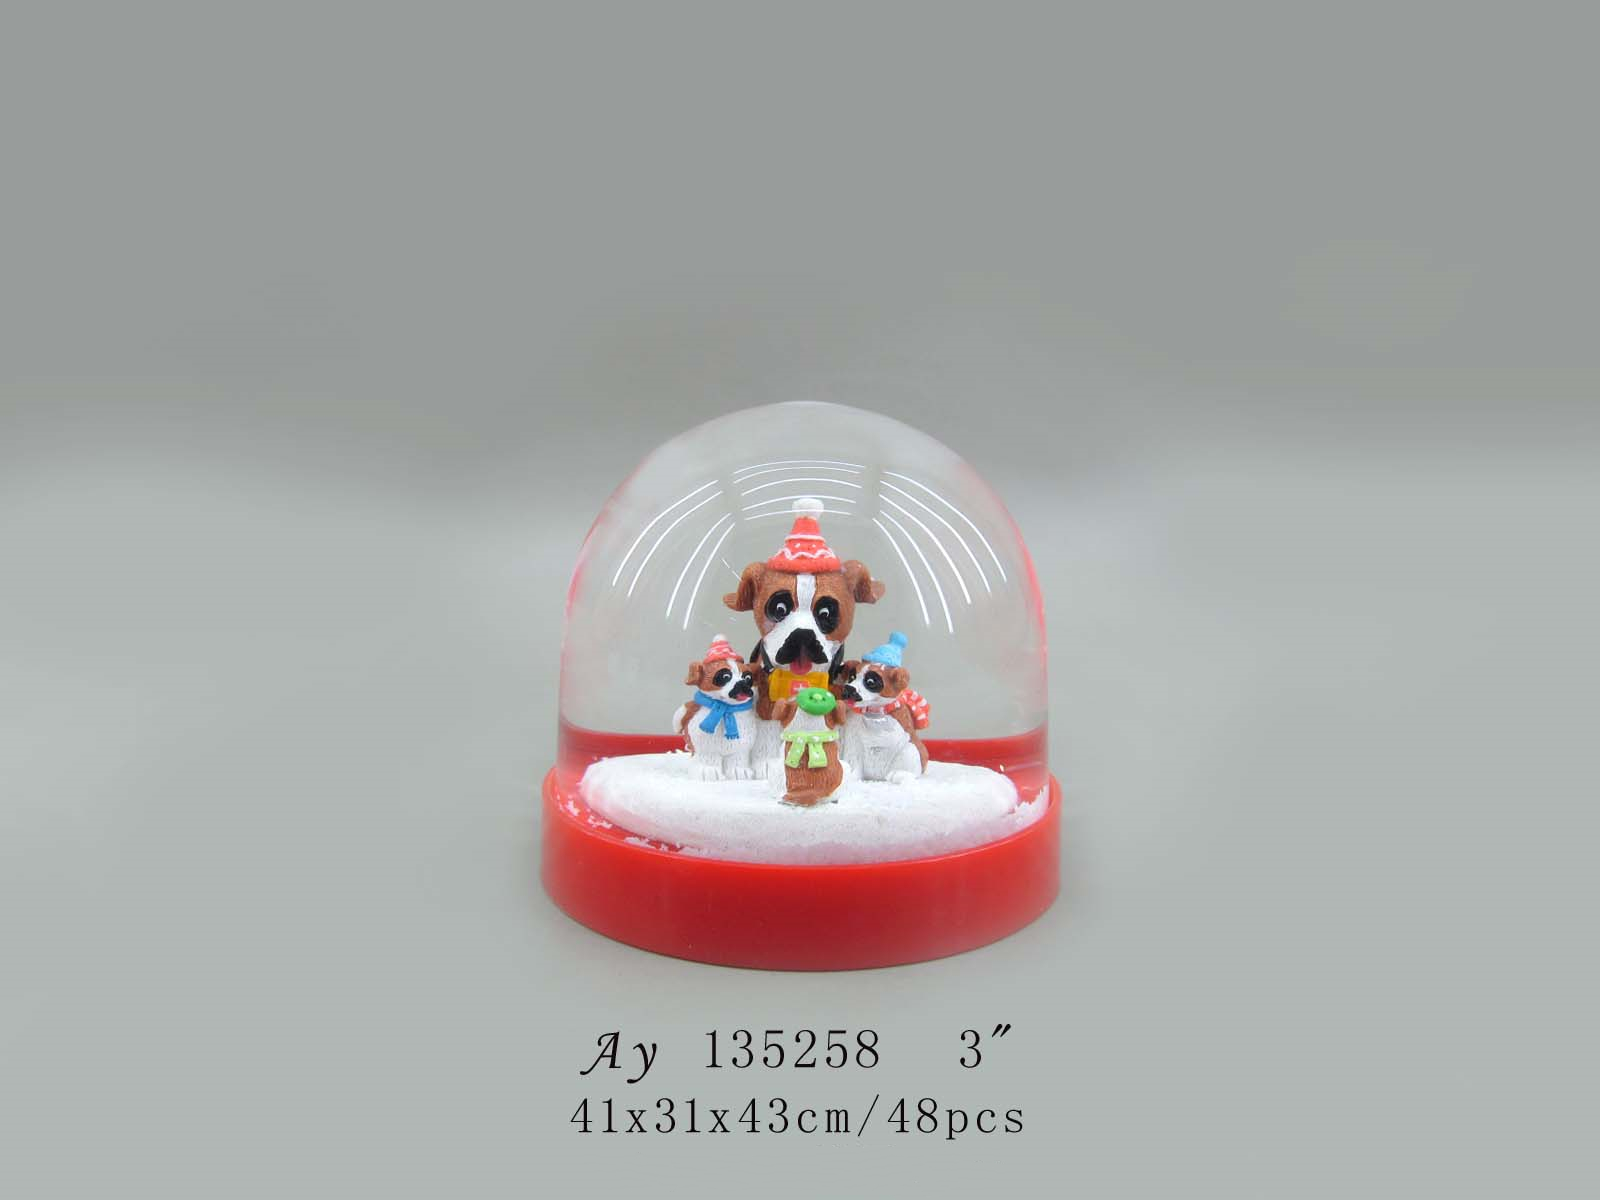 Multifunctional cheap acrylic snow globe kit for wholesales